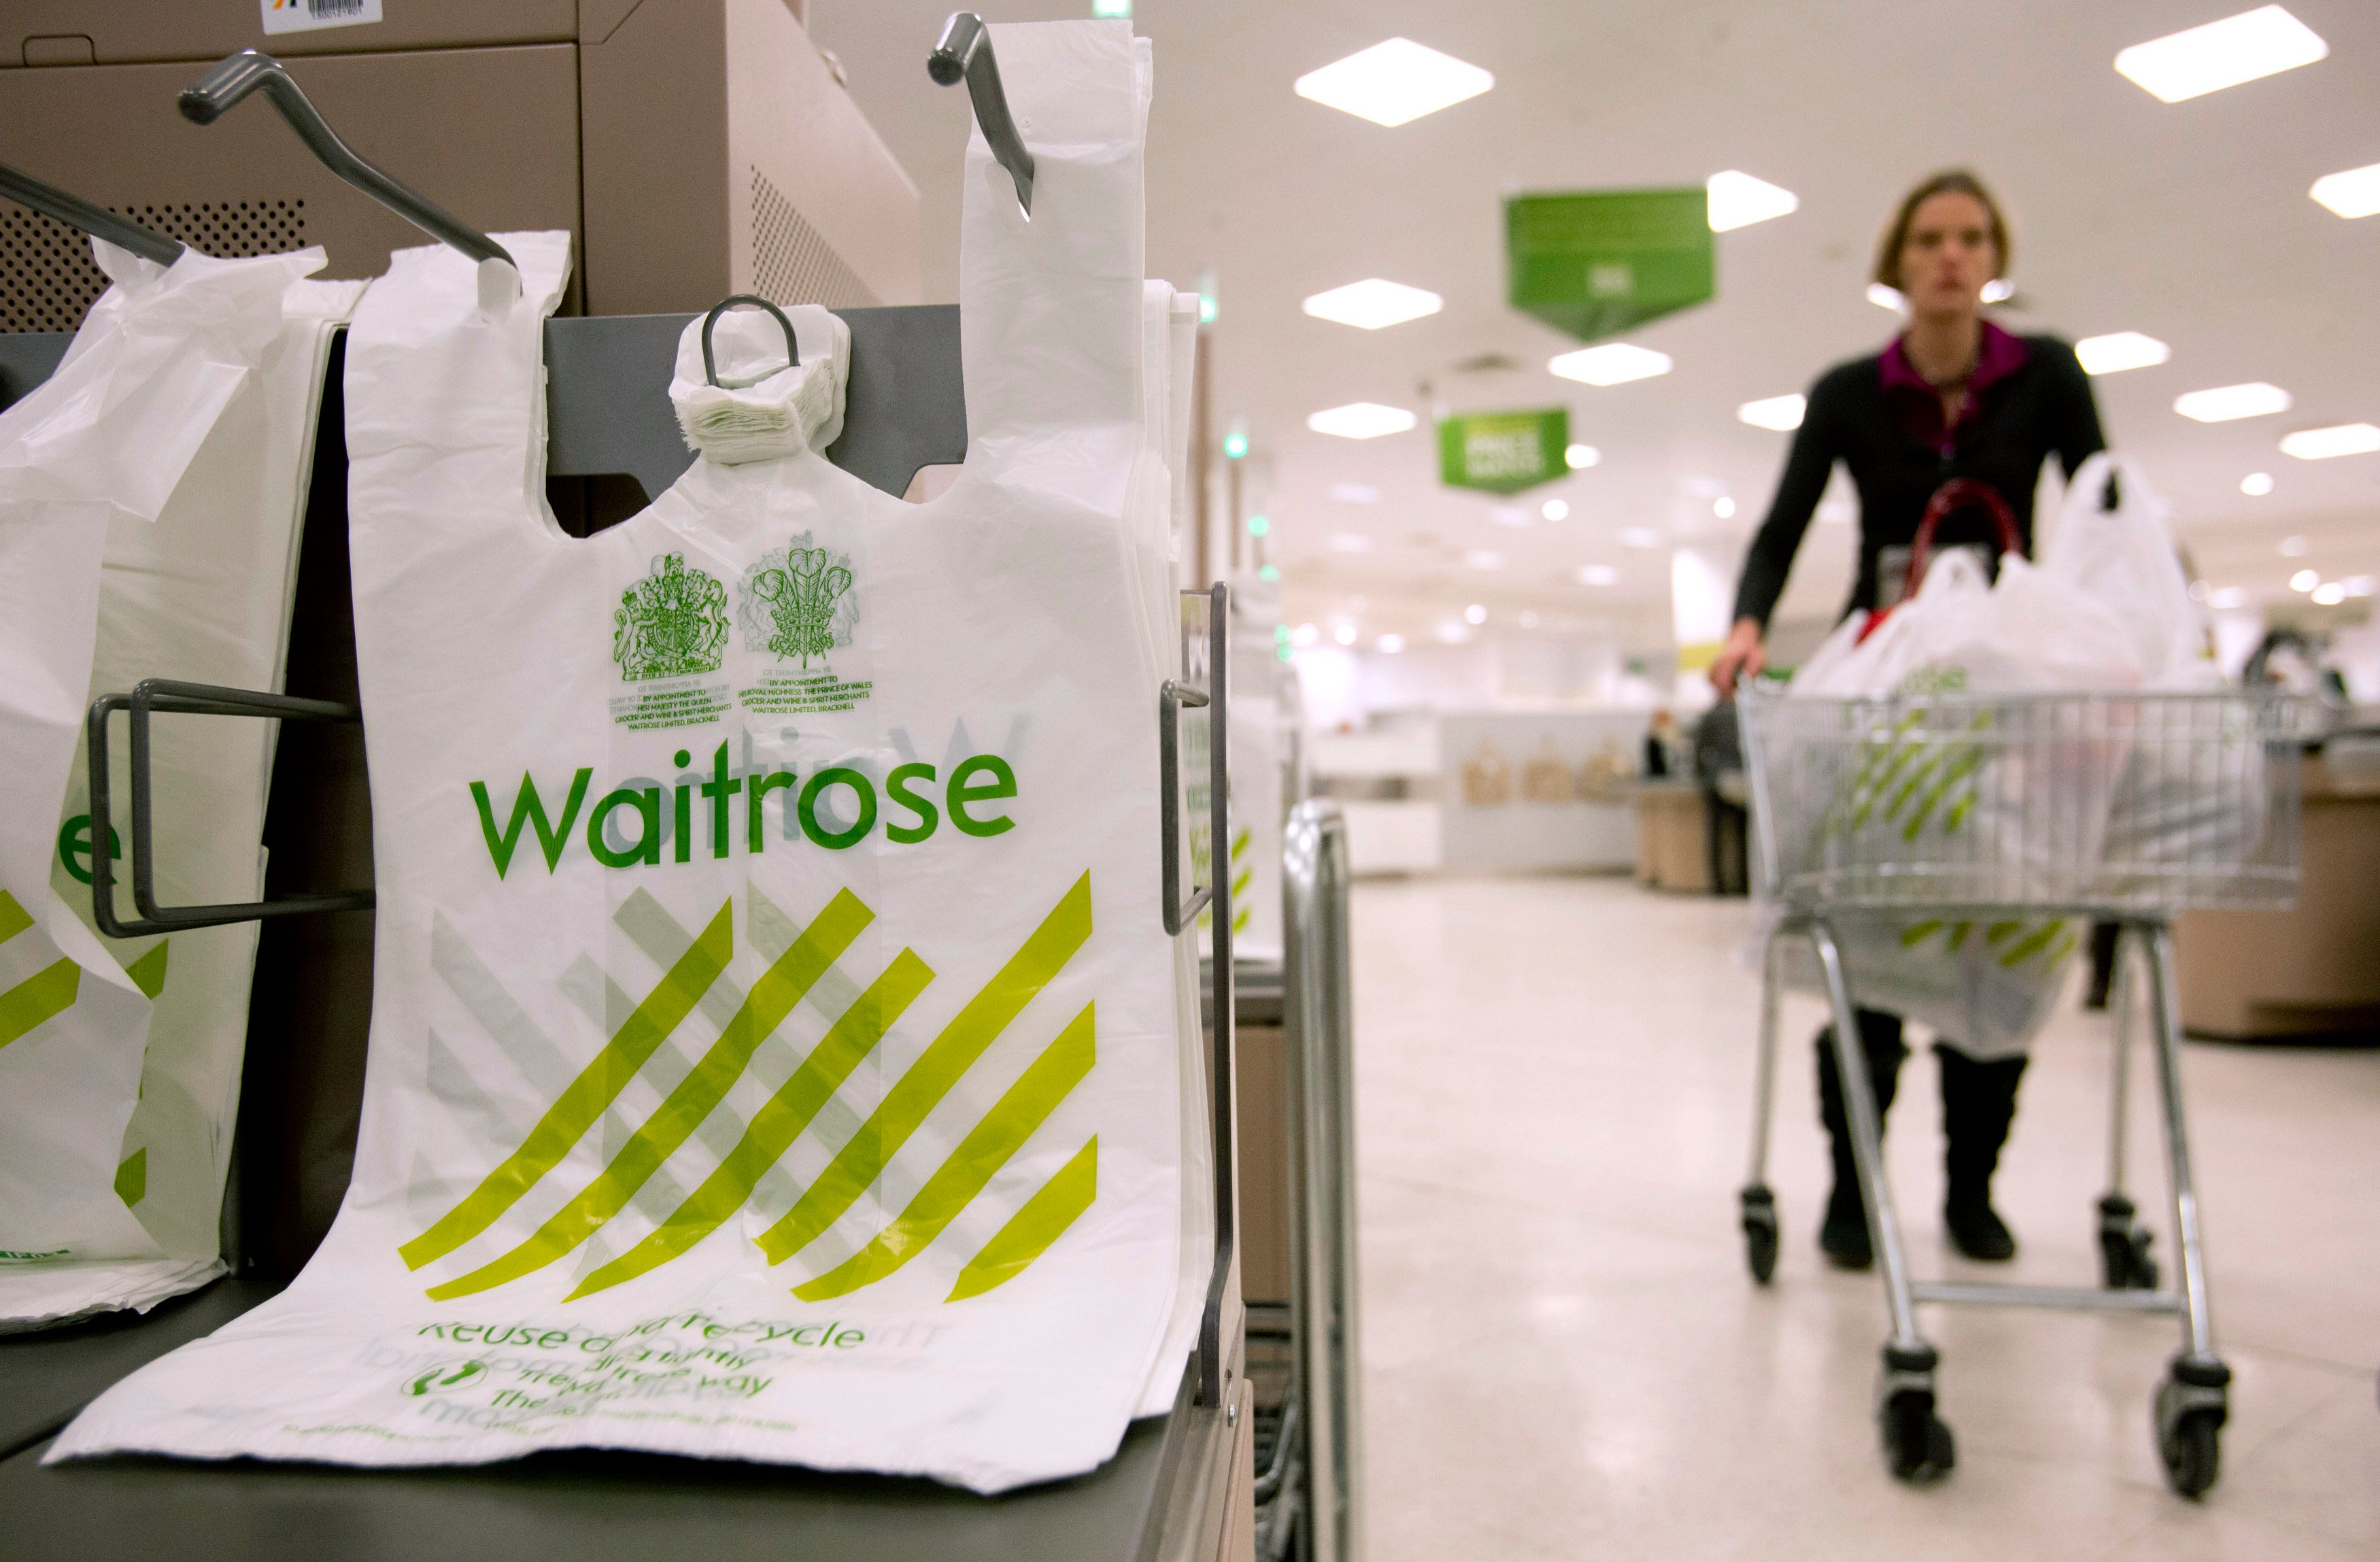 Waitrose Has Been Criticised For Its List Of 'Essential' Student Food